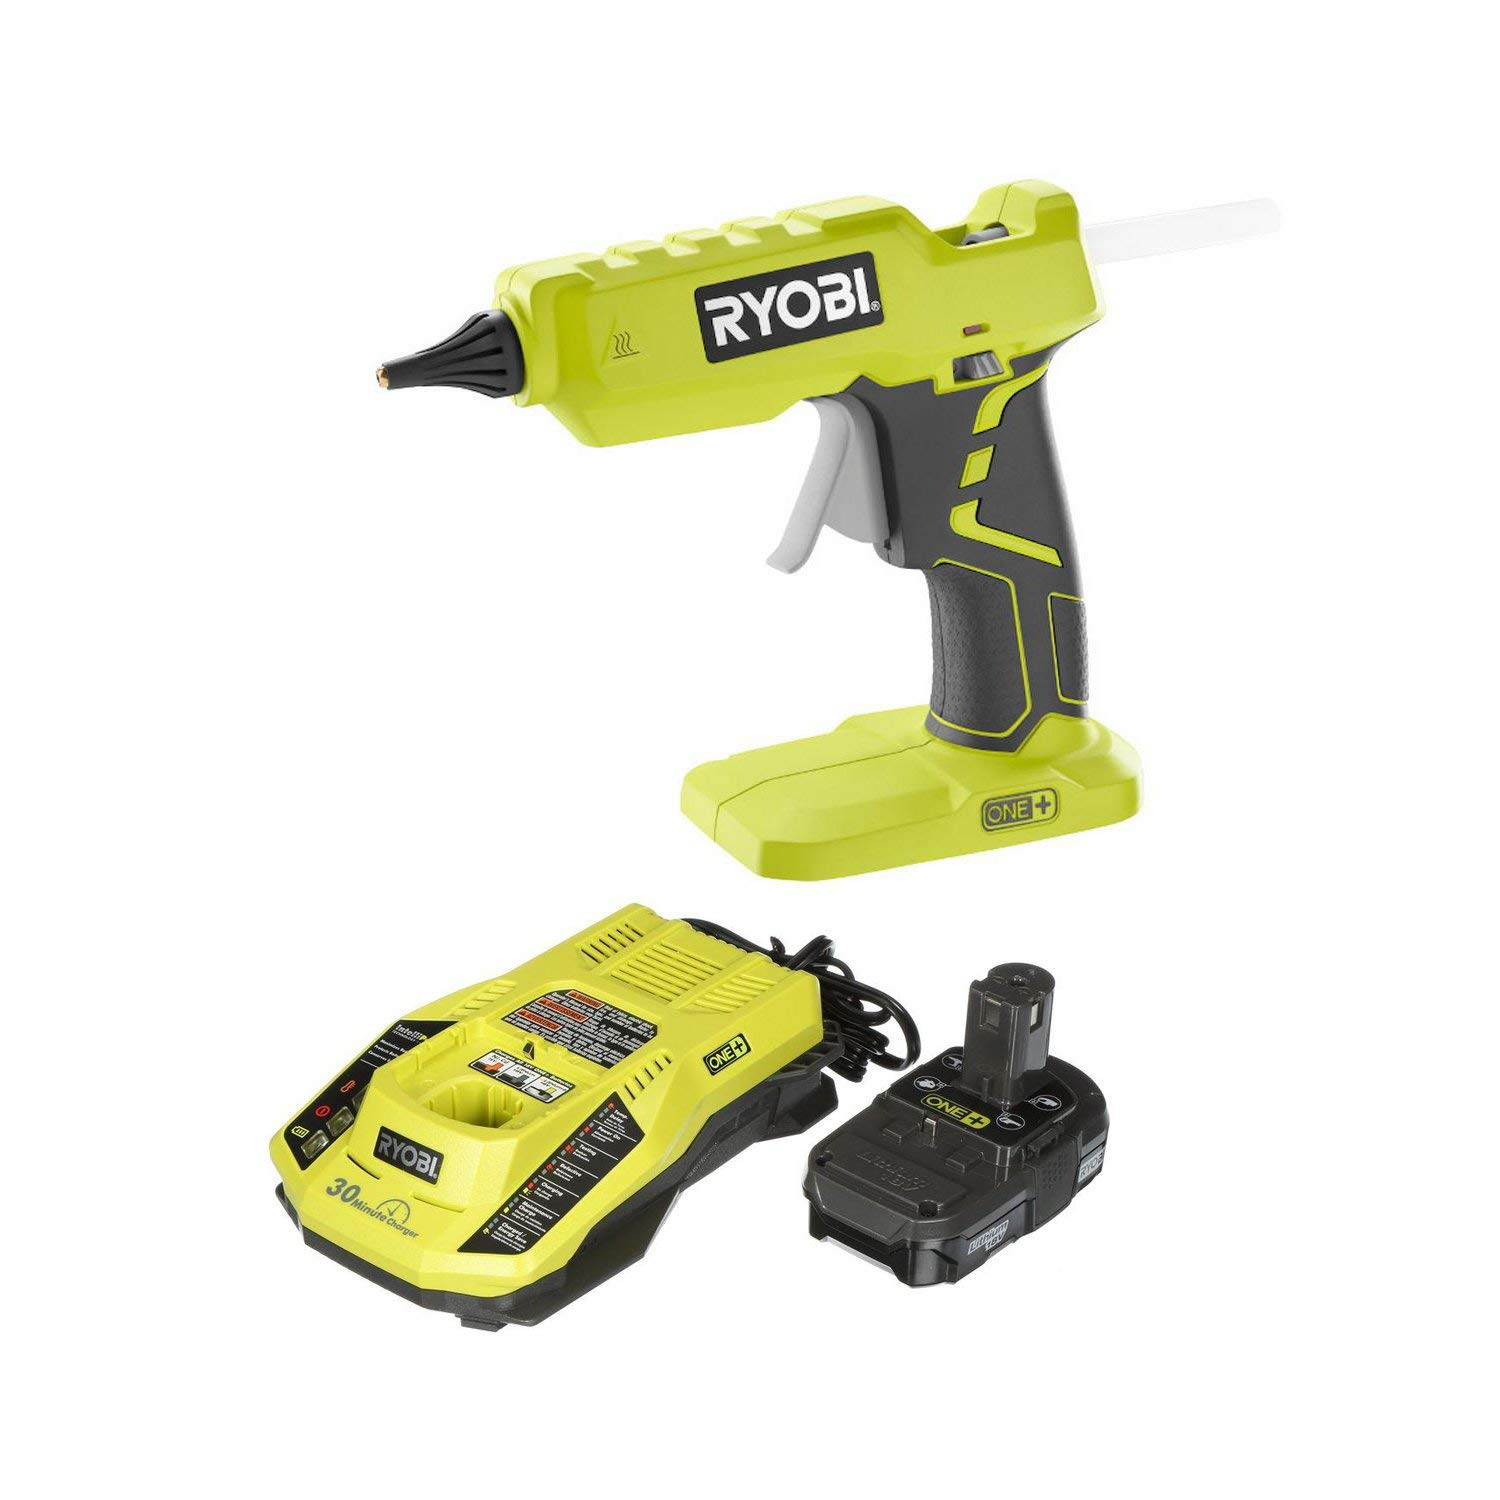 Ryobi 18-Volt ONE+ Cordless Full Size Glue Gun with Charger and 18-Volt ONE+ Lithium-Ion Battery (Bundle) (Renewed)